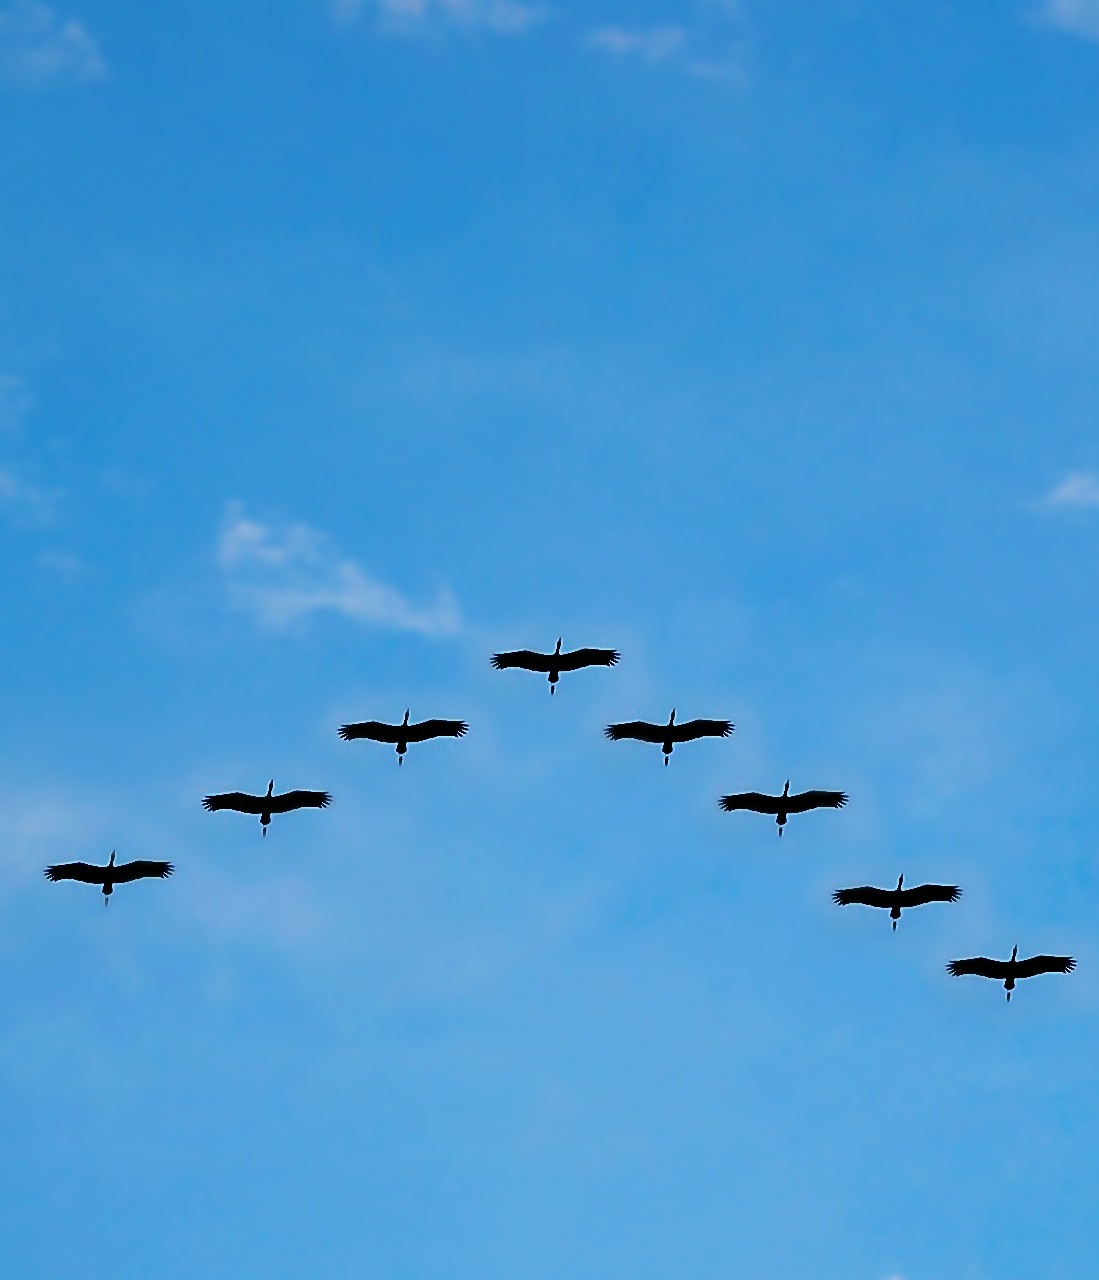 Picture of birds flying in v formation.